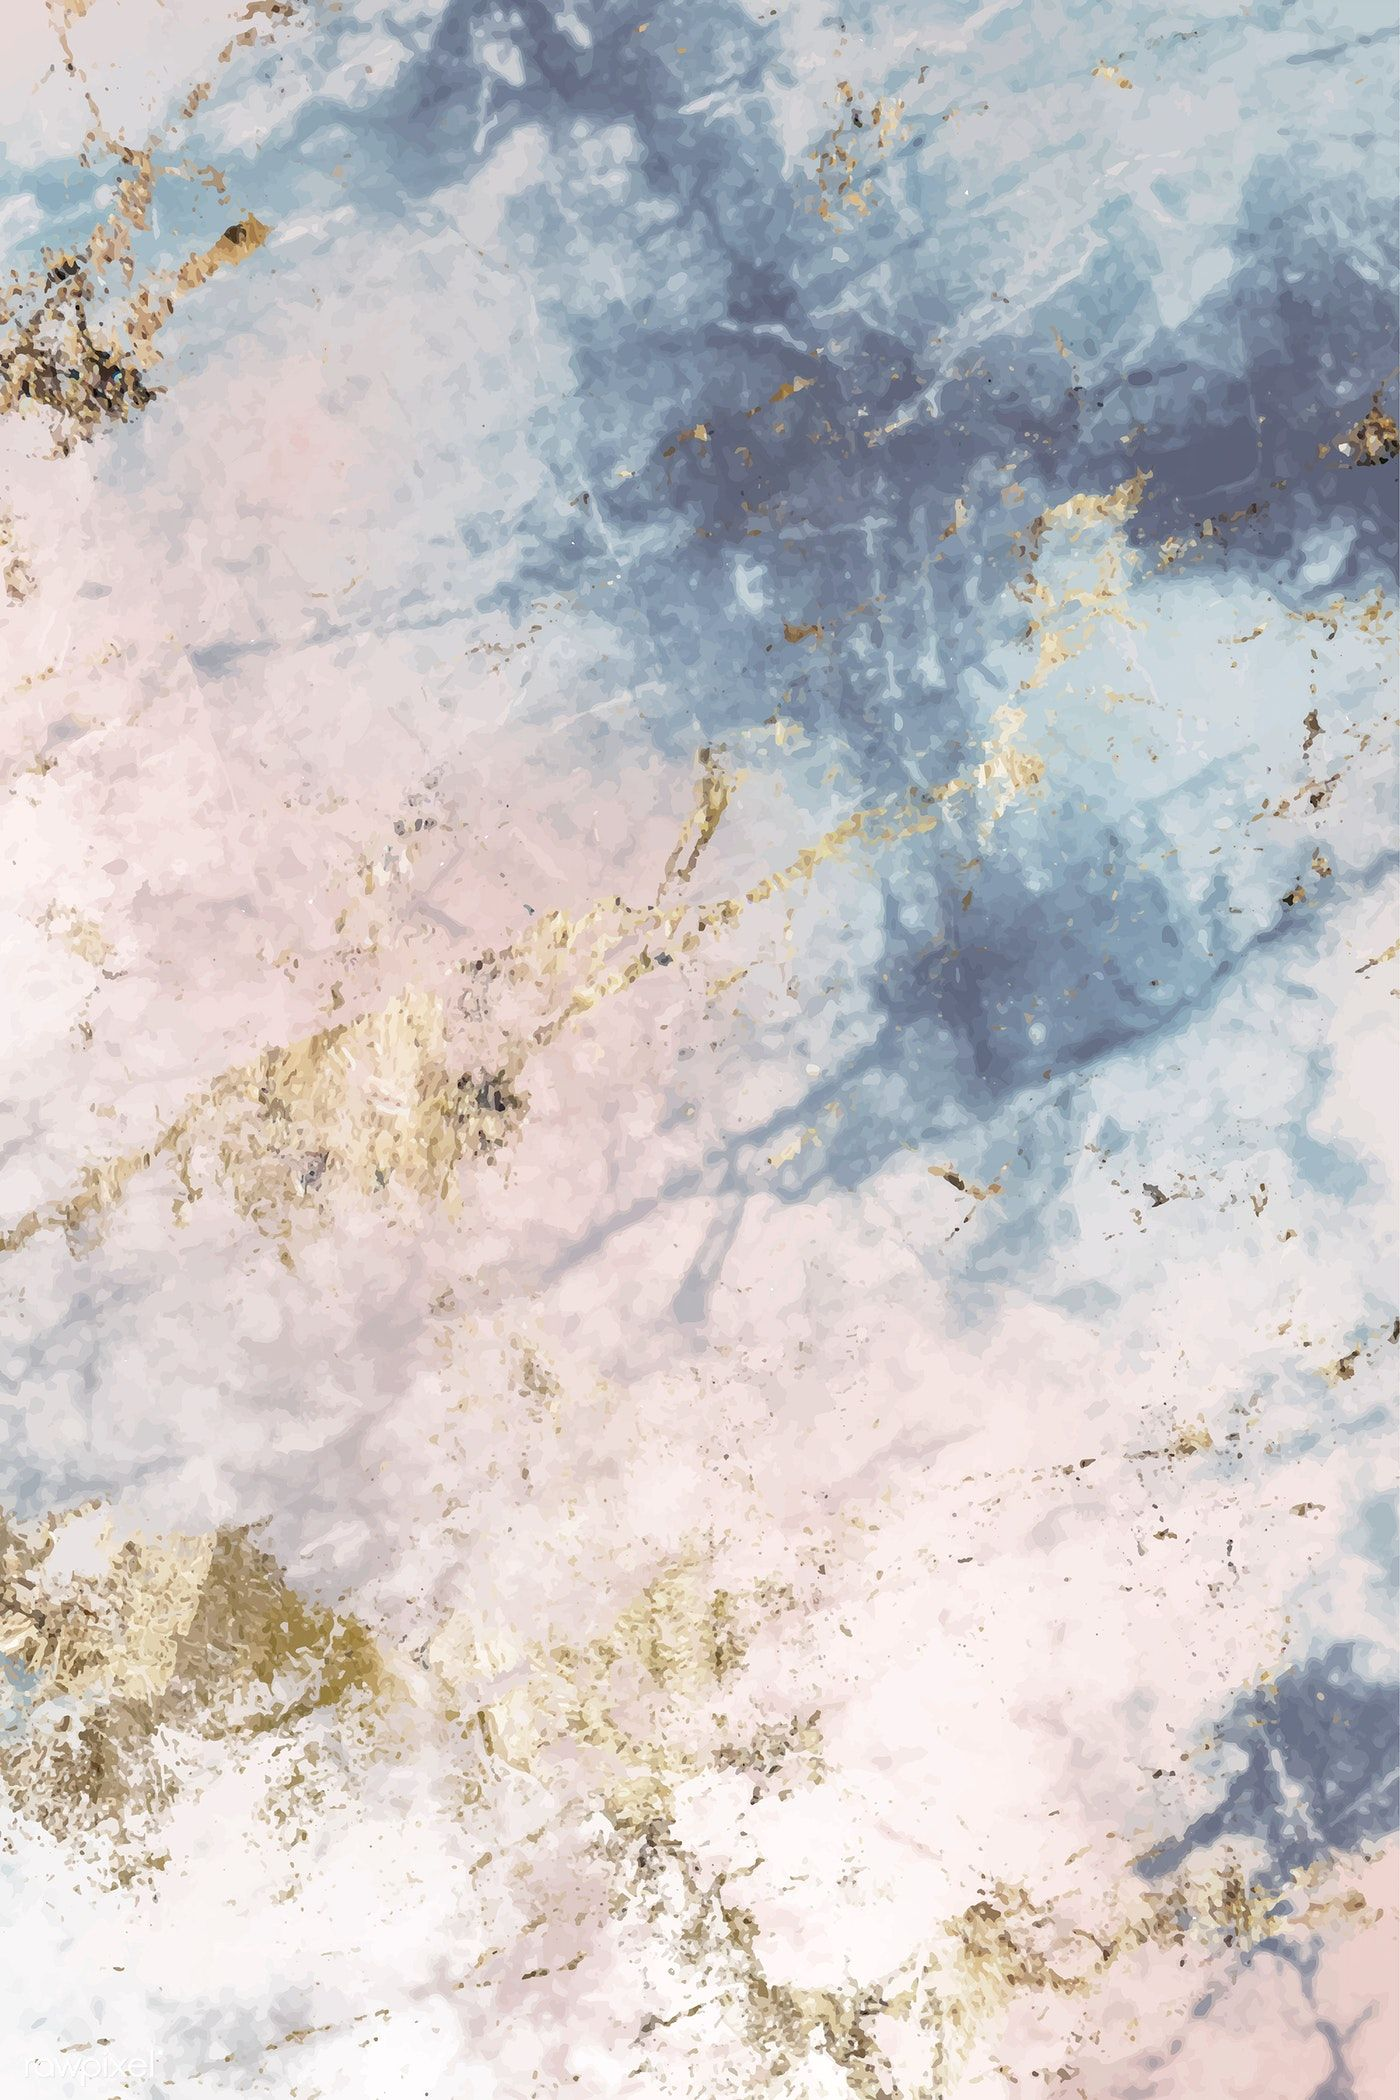 Download free vector of Pink and blue marble textured background vector